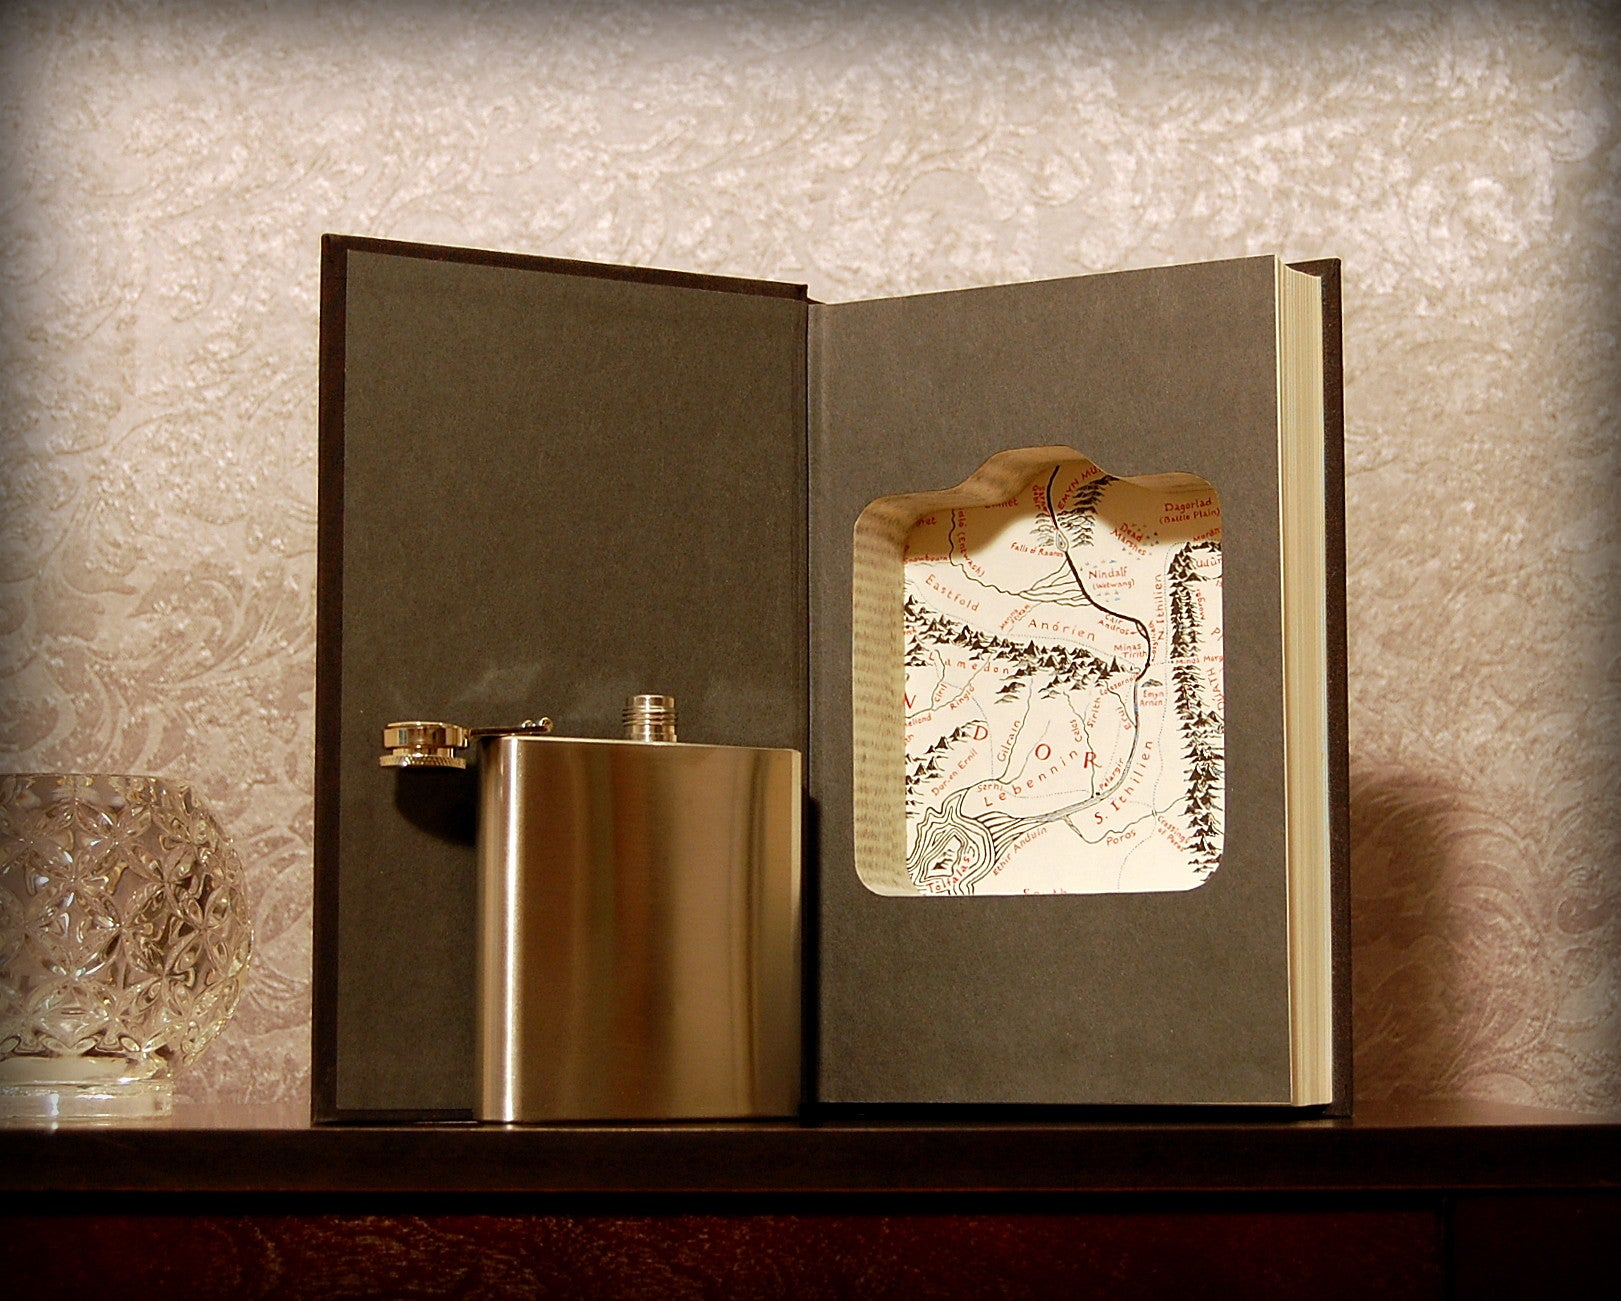 Lord of the Rings: Return of the King (with Flask) / J.R.R. Tolkien - hollow book safe